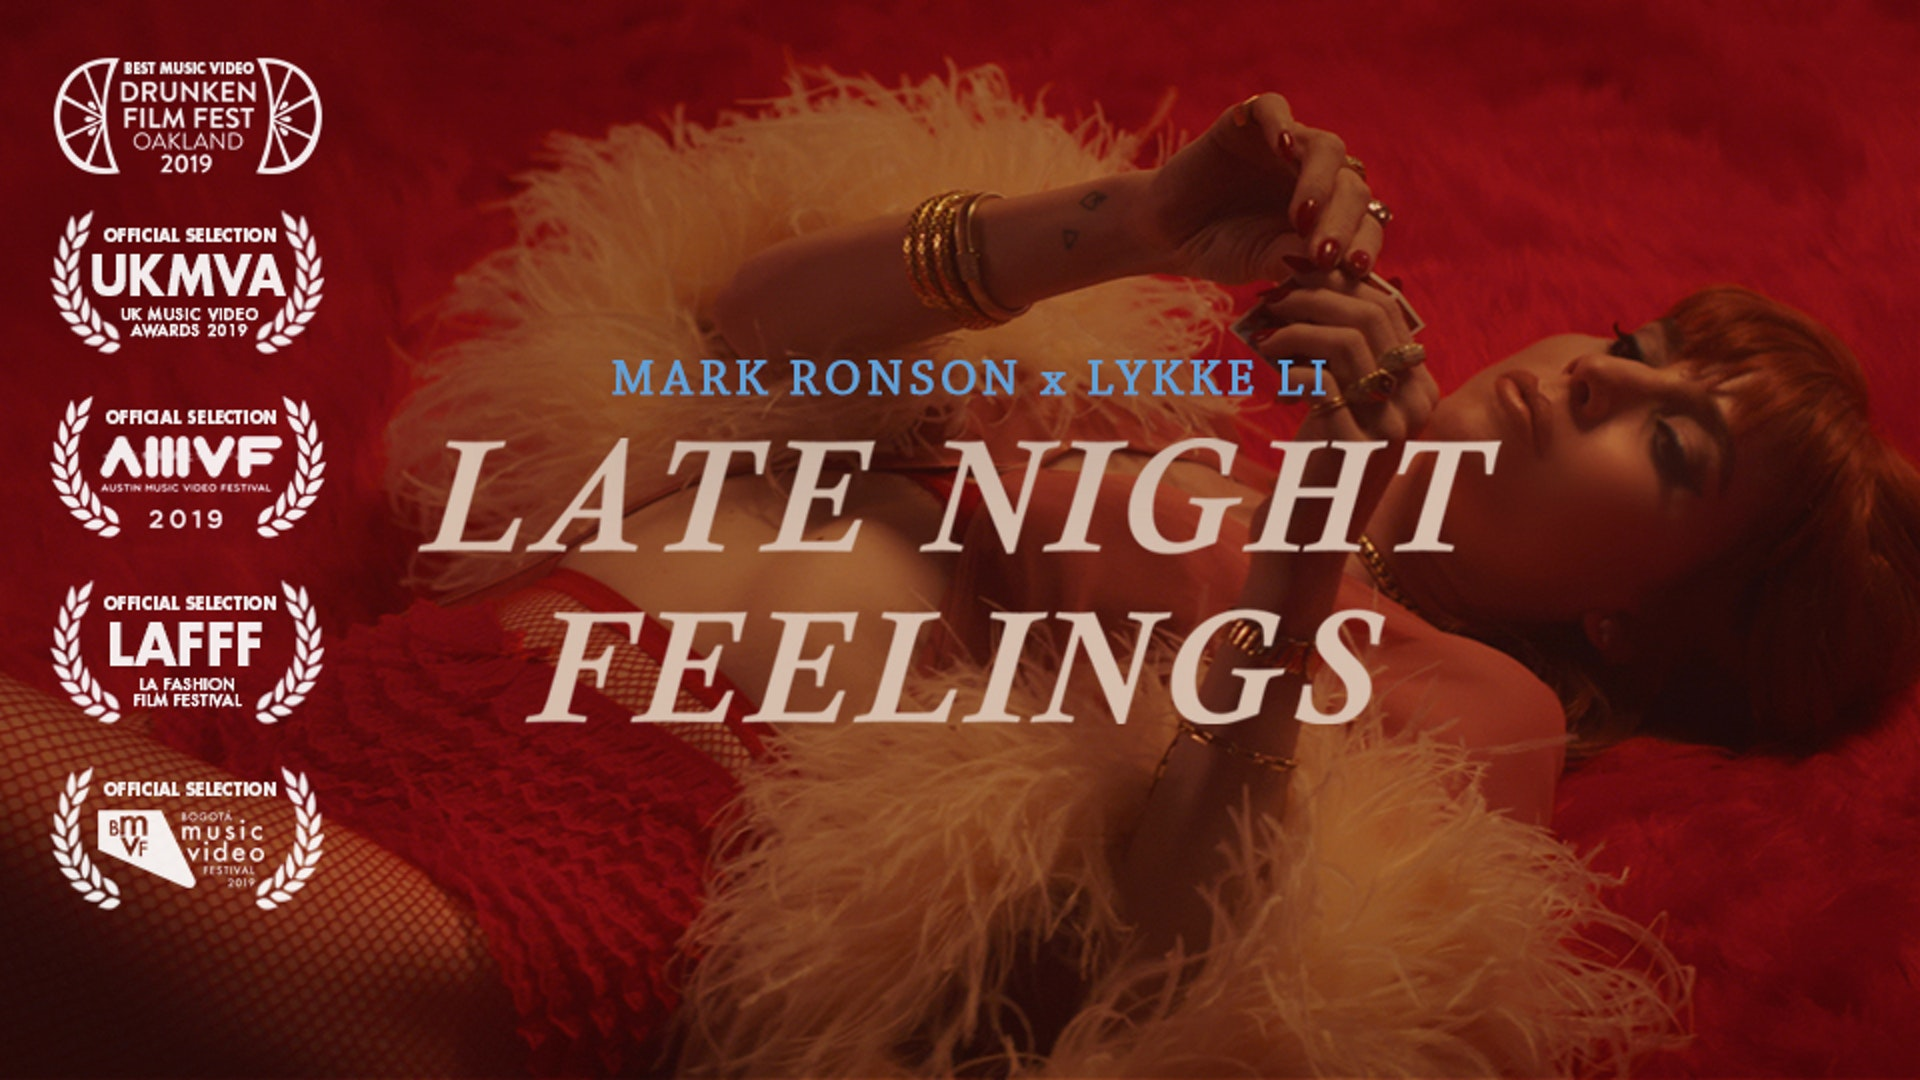 MARK RONSON (FEAT LYKKE LI) - LATE NIGHT FEELINGS